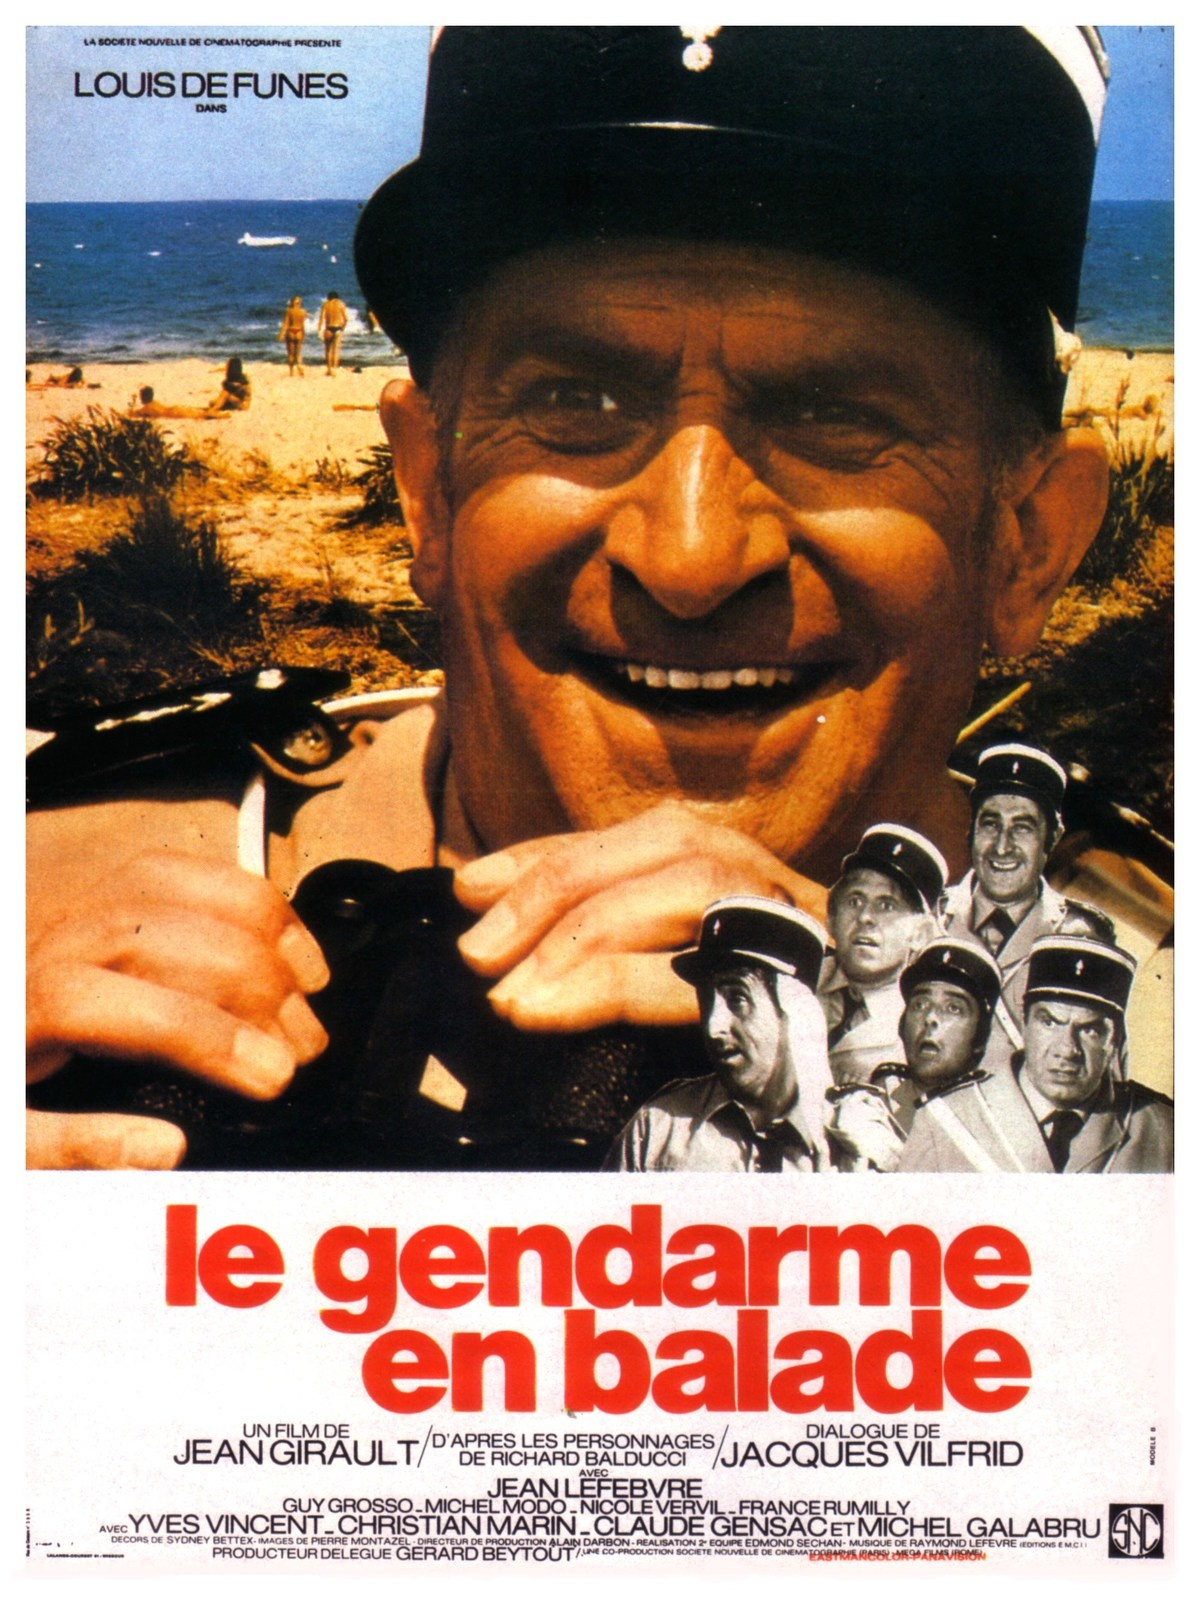 Streaming de funes film gratuit louis jo